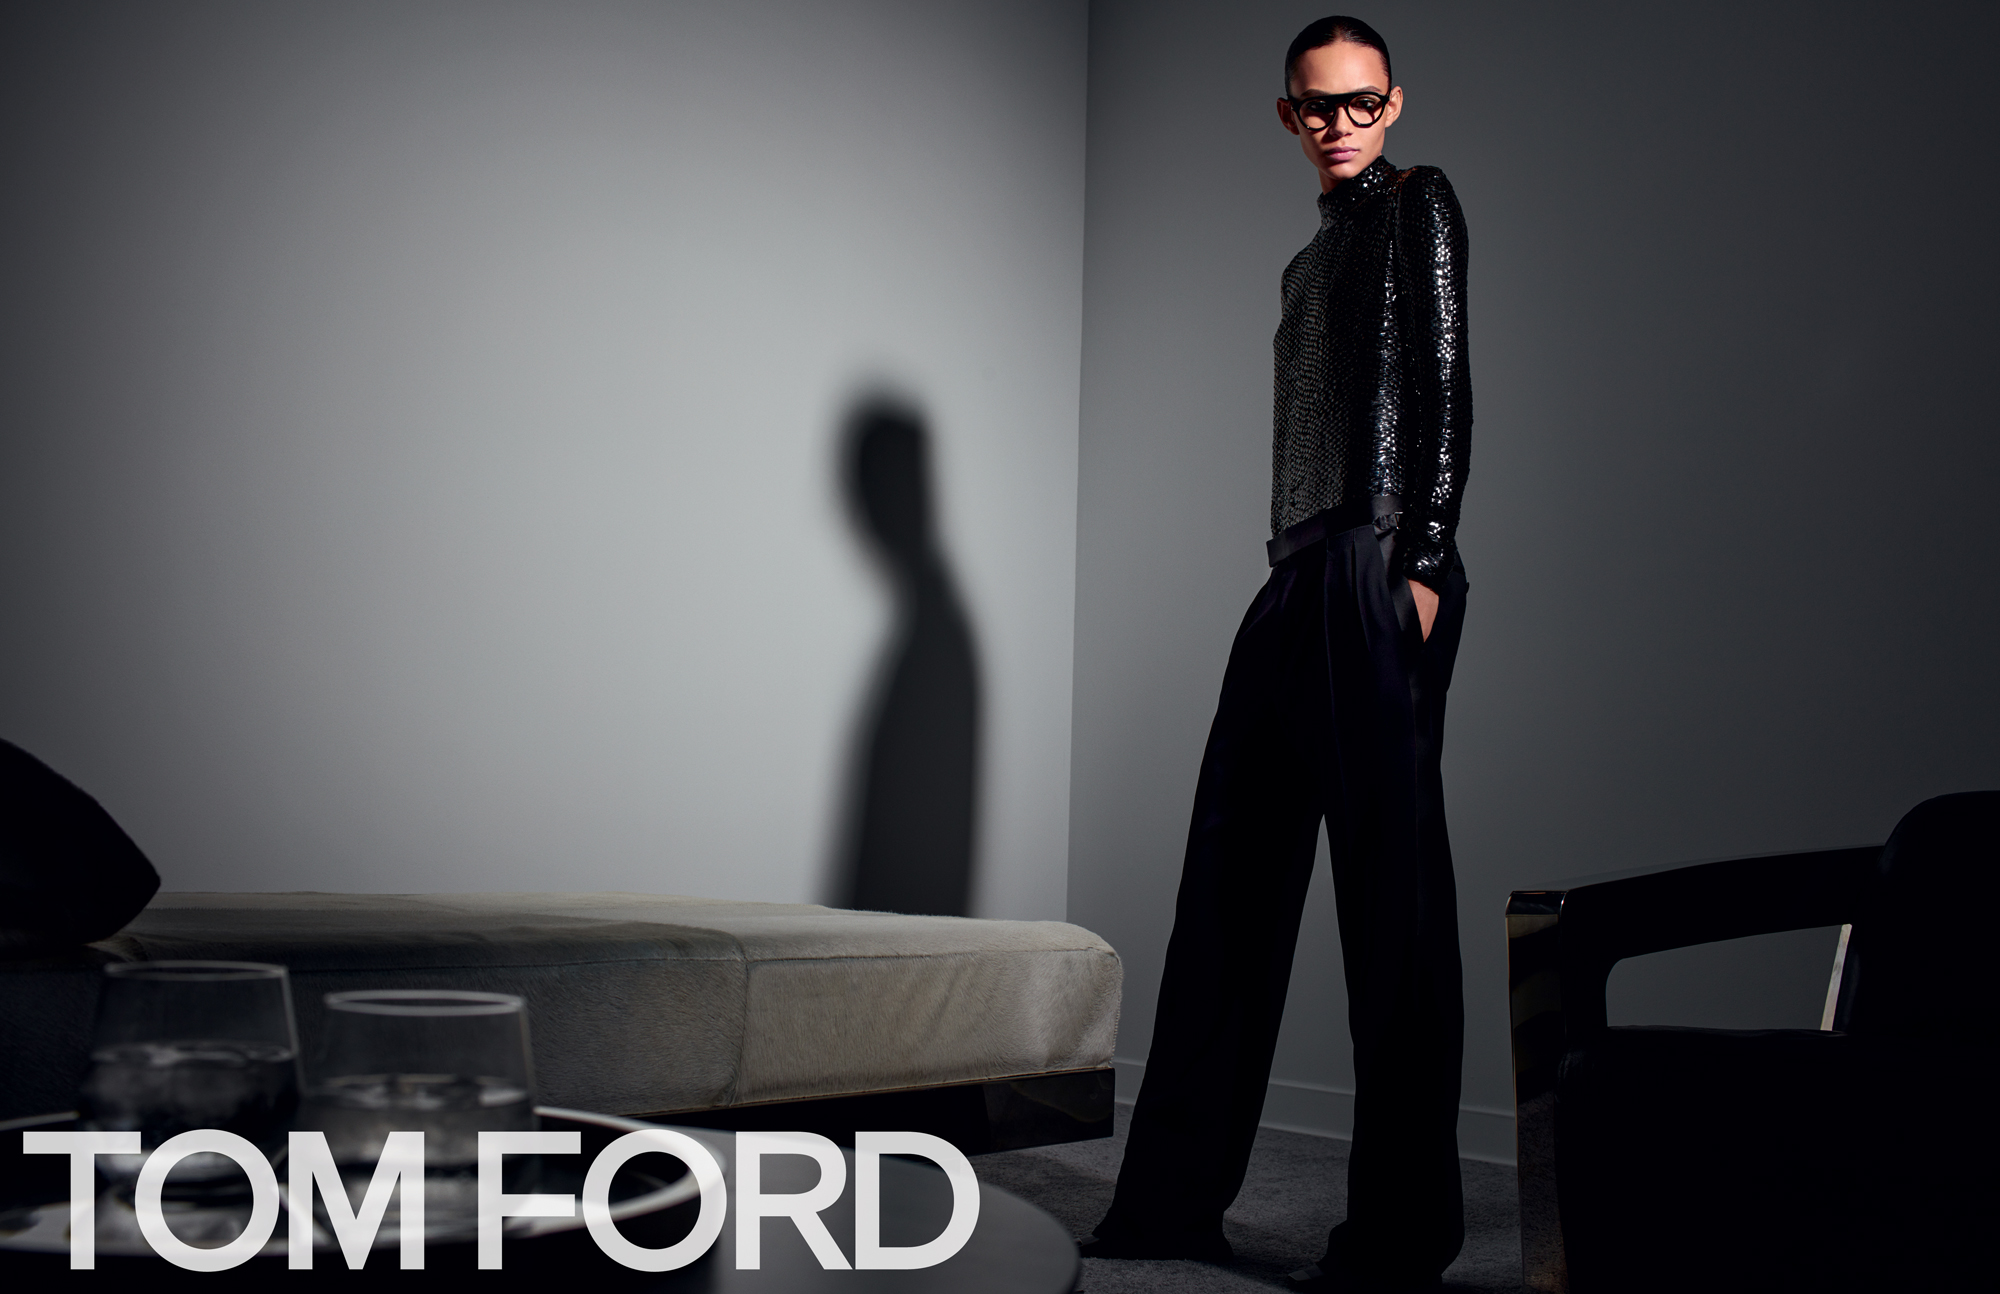 Tom-Ford-fall-2017-ad-campaign-the-impression-003